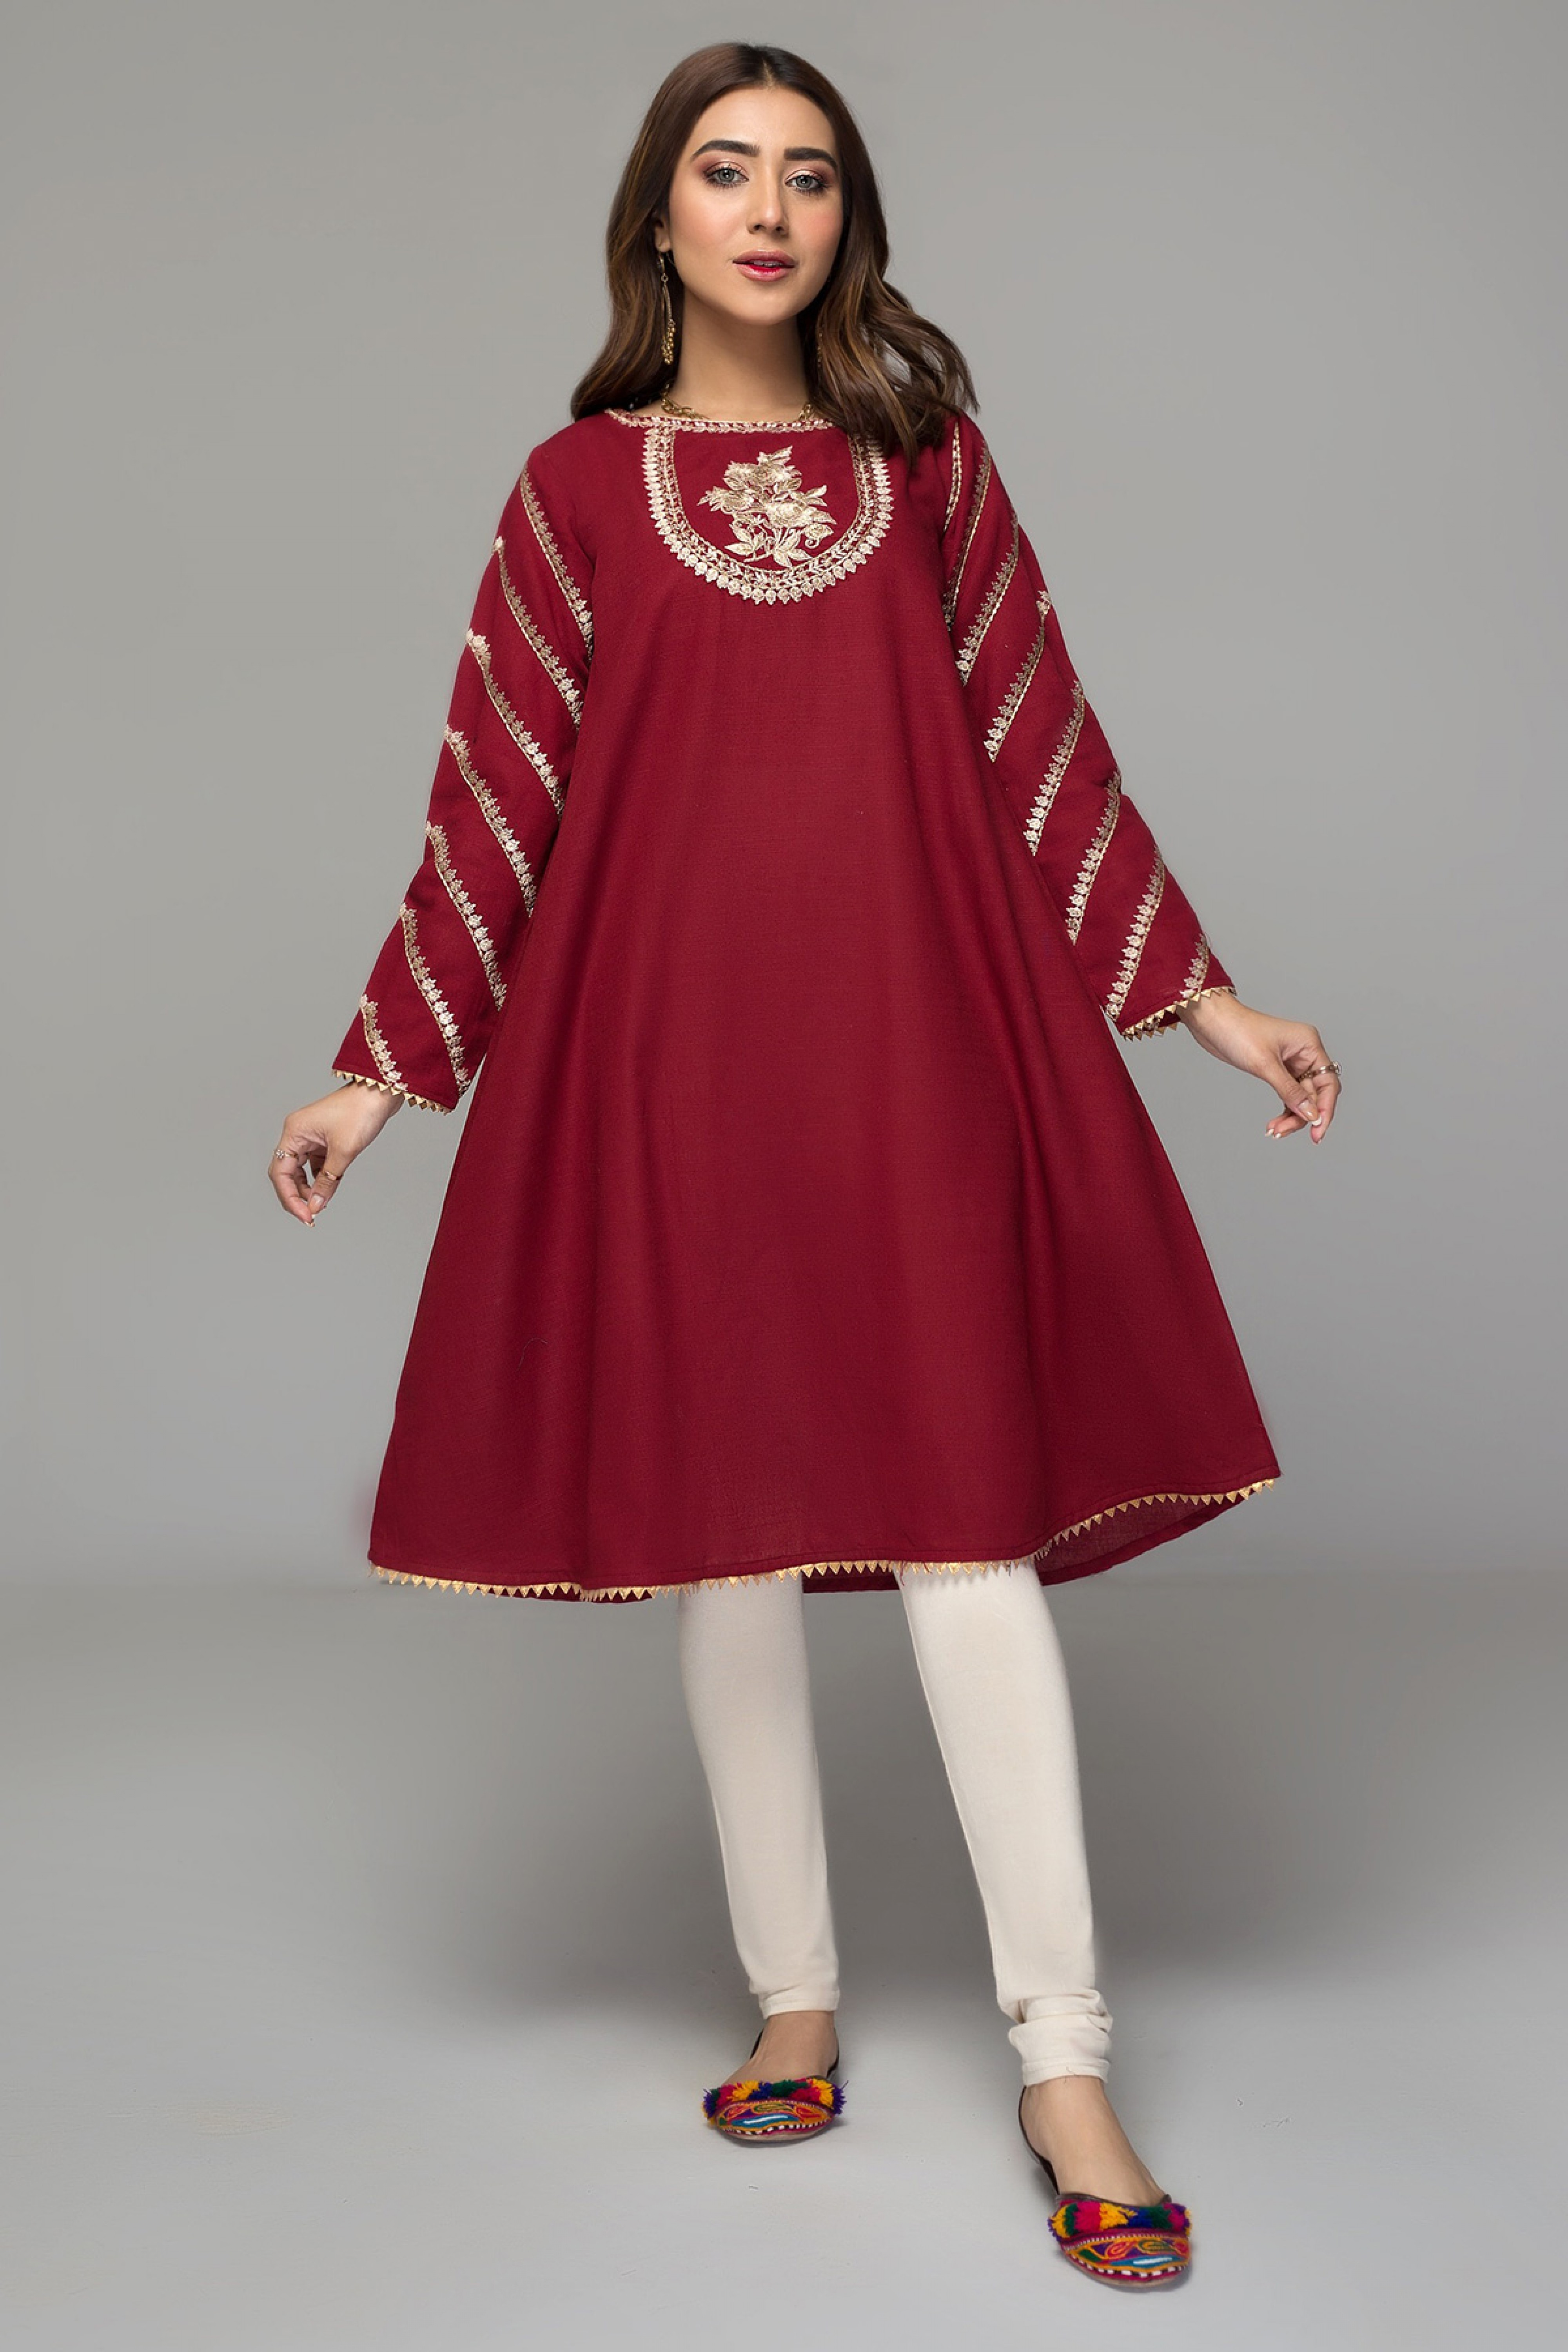 IXORA(Embroidered Frock)